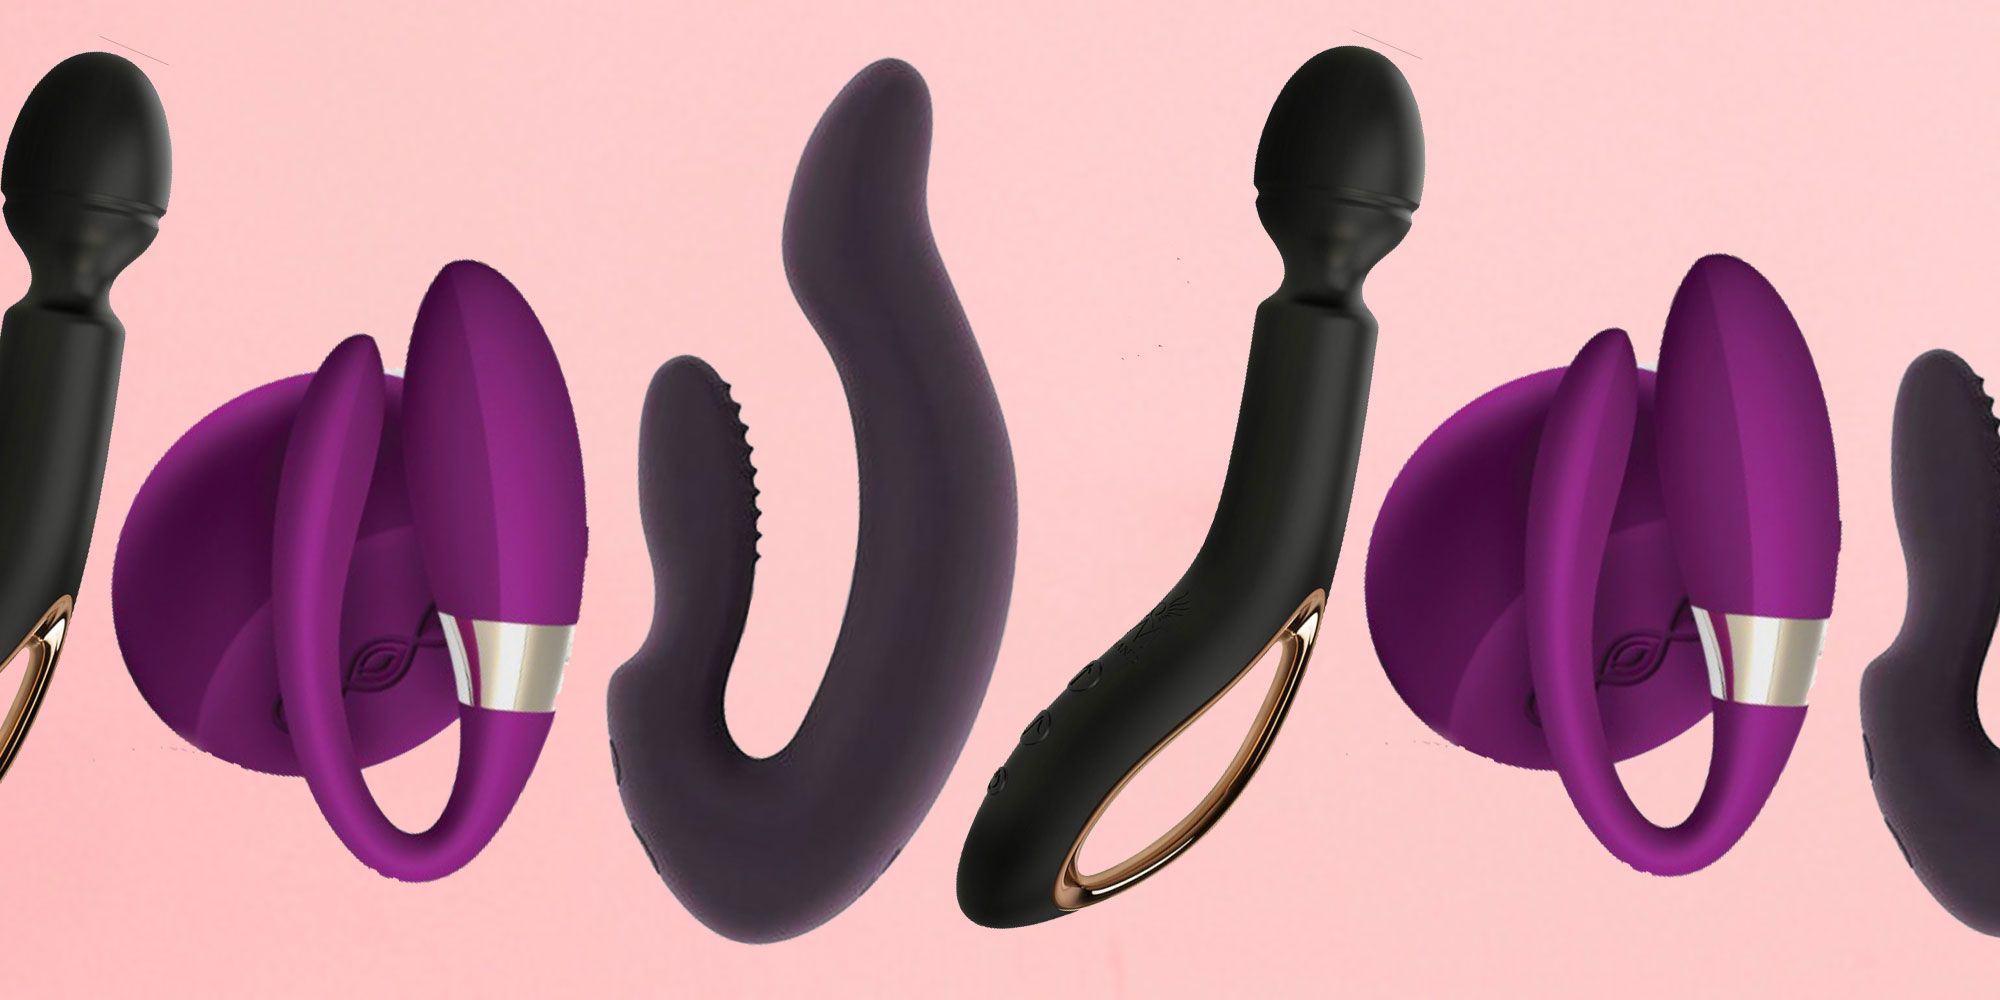 Sex toys for couples | Best sex toys for couples